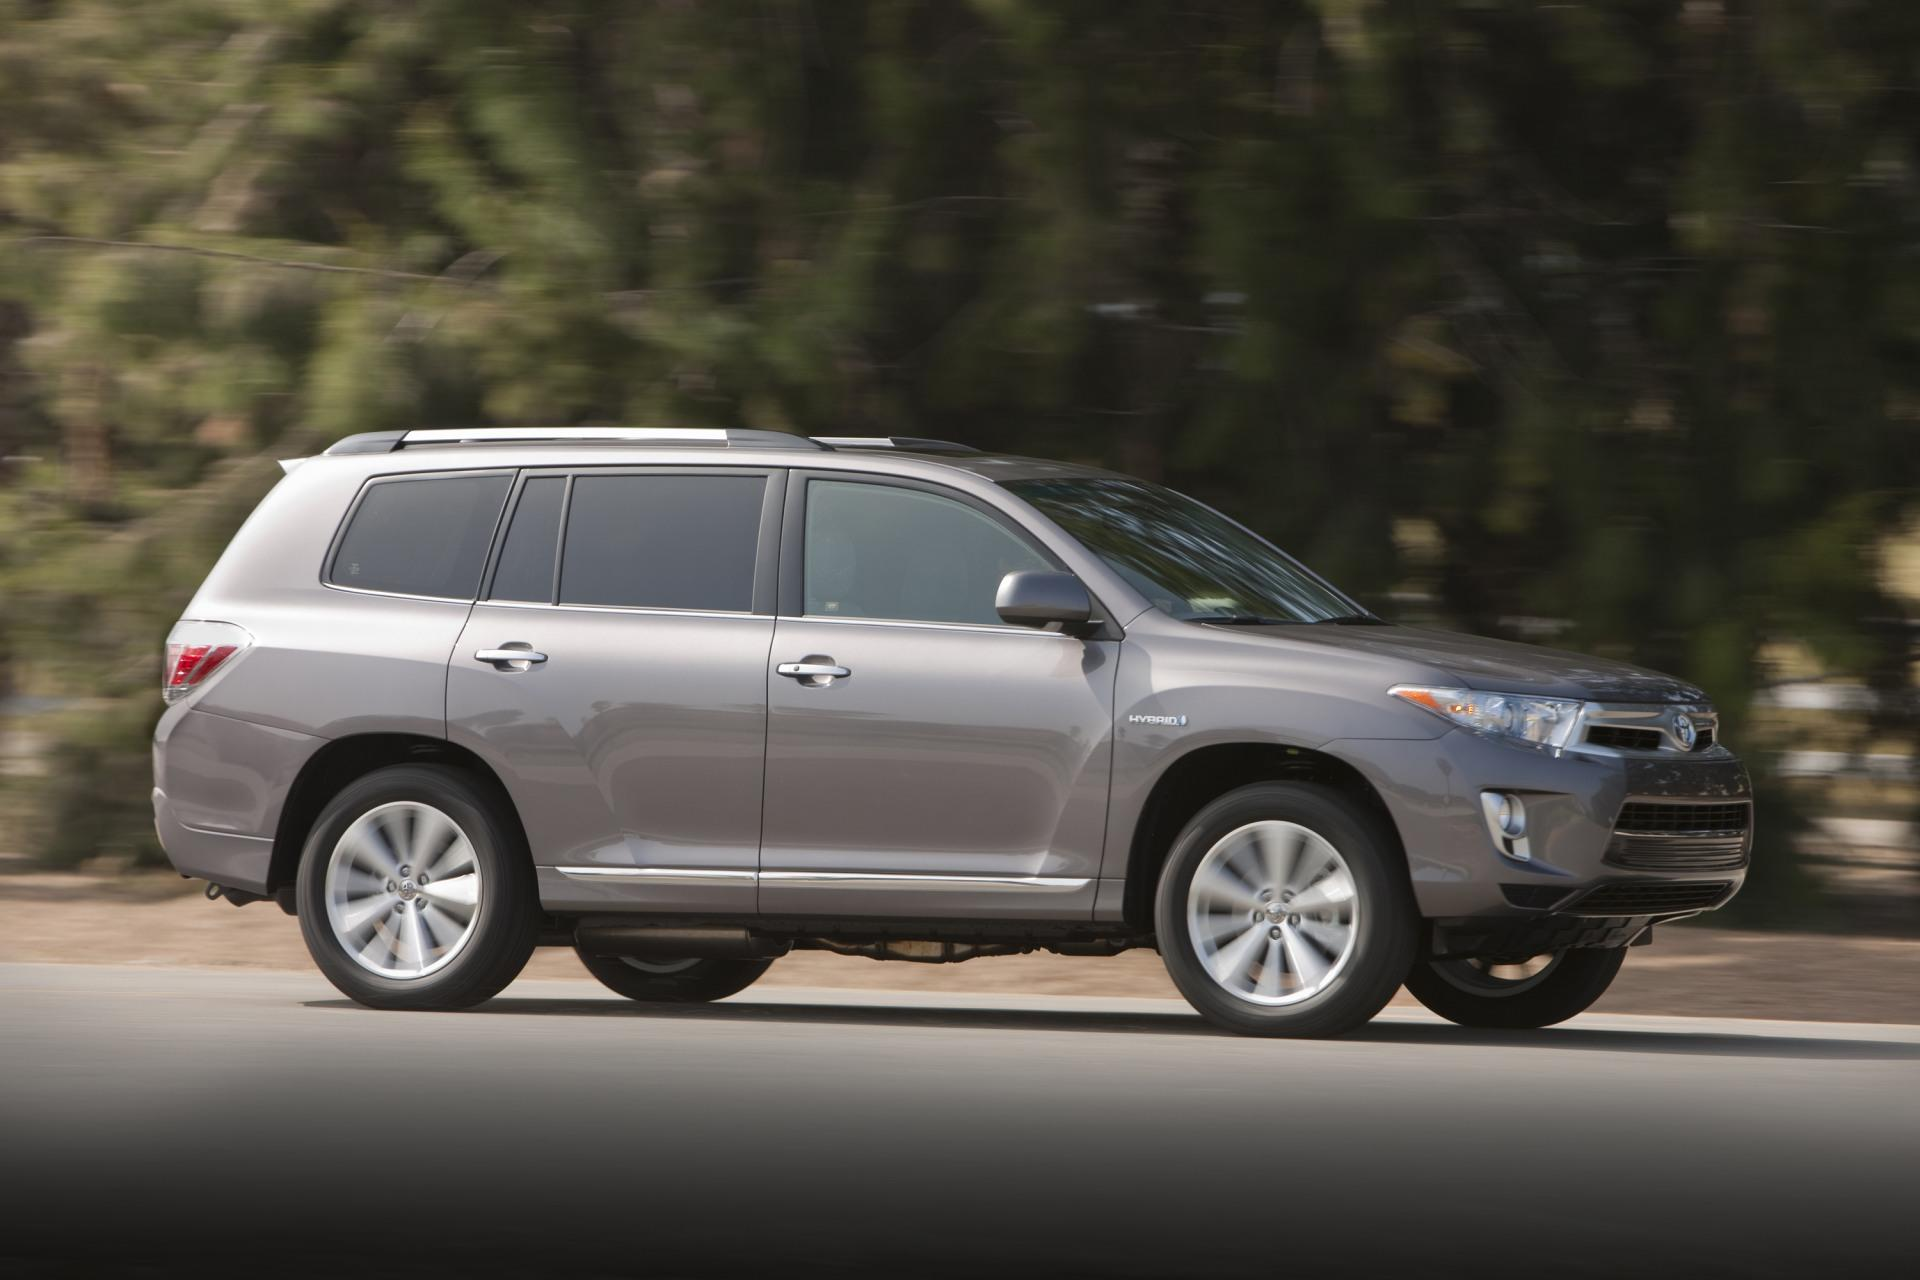 highlander toyota hybrid gray magnetic side metallic driving rear row conceptcarz with climate seating standard control three